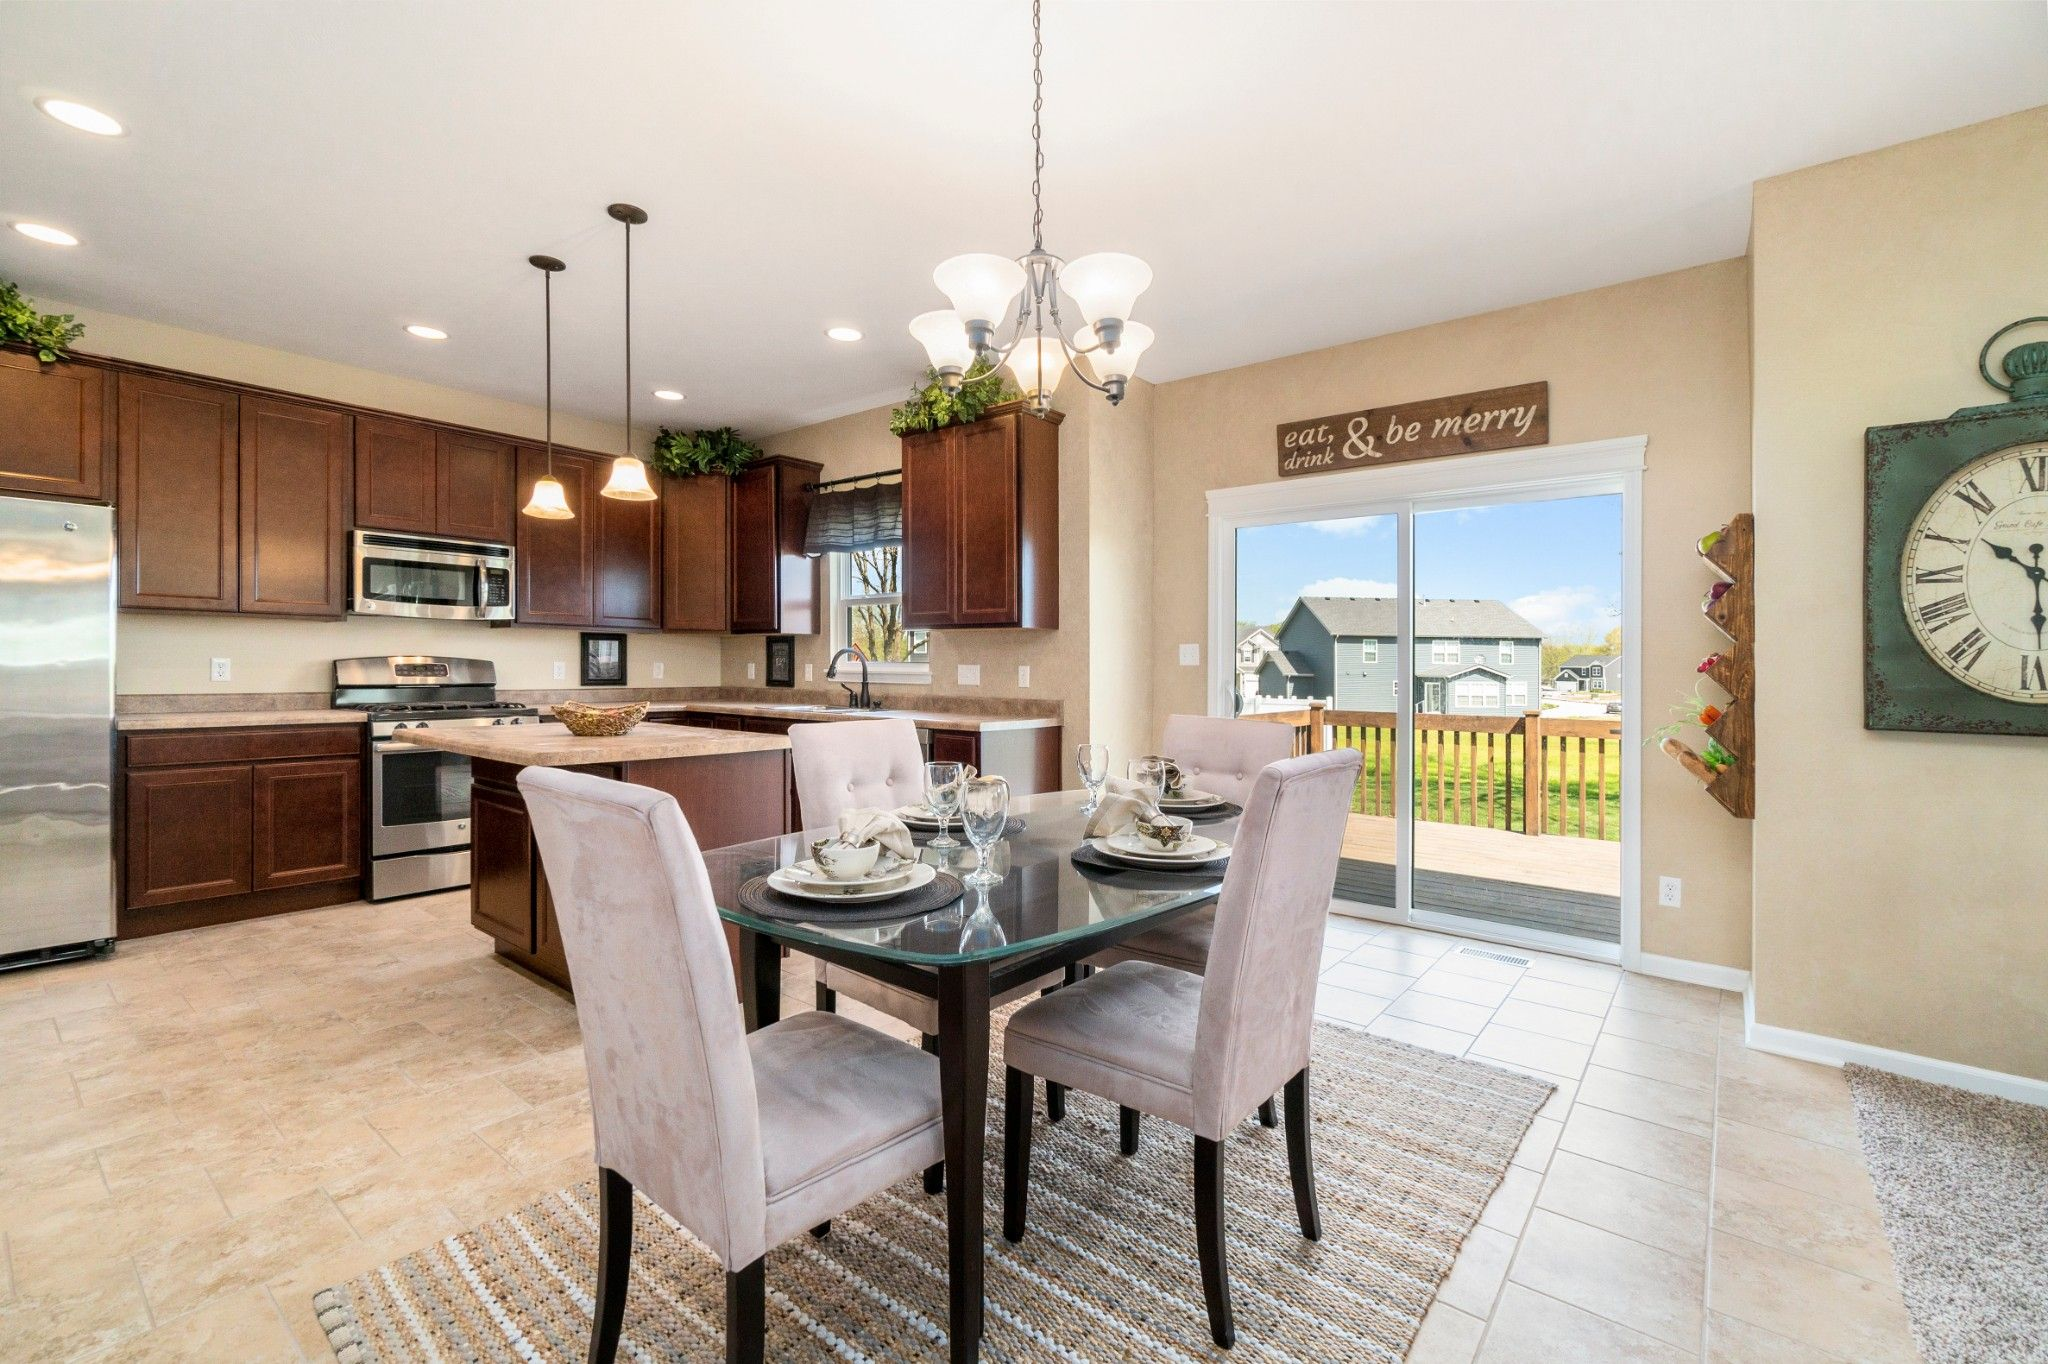 Kitchen featured in the Kipling By Olthof Homes in Gary, IN